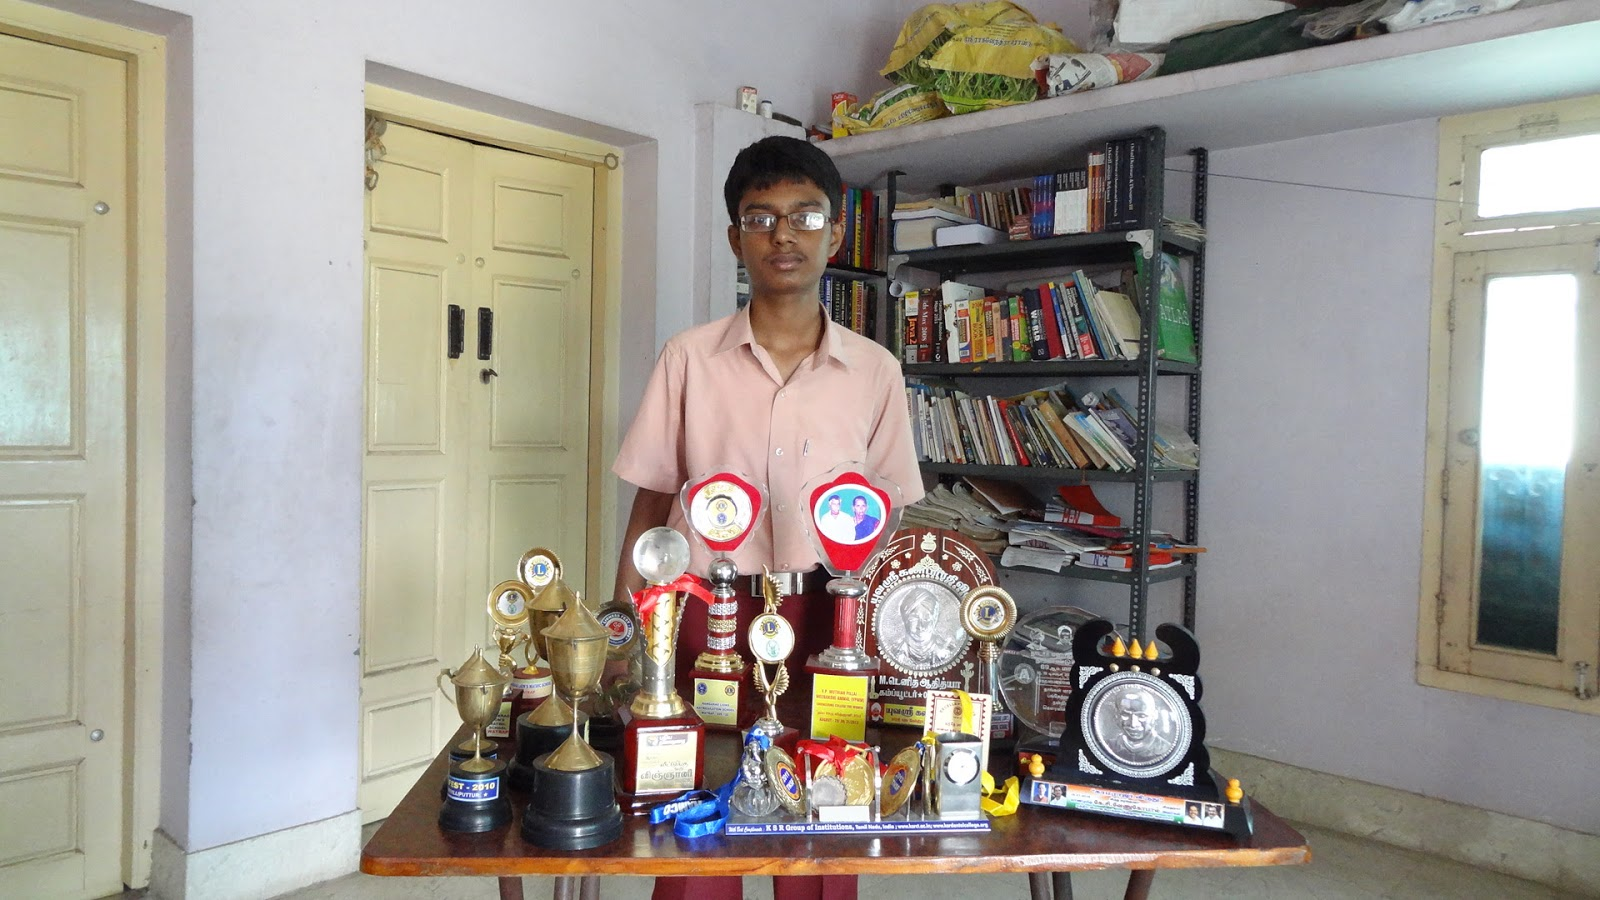 This 15-Year Old Genius Boy's Inventions Are So Good You'll Be Amazed At How He Thinks!